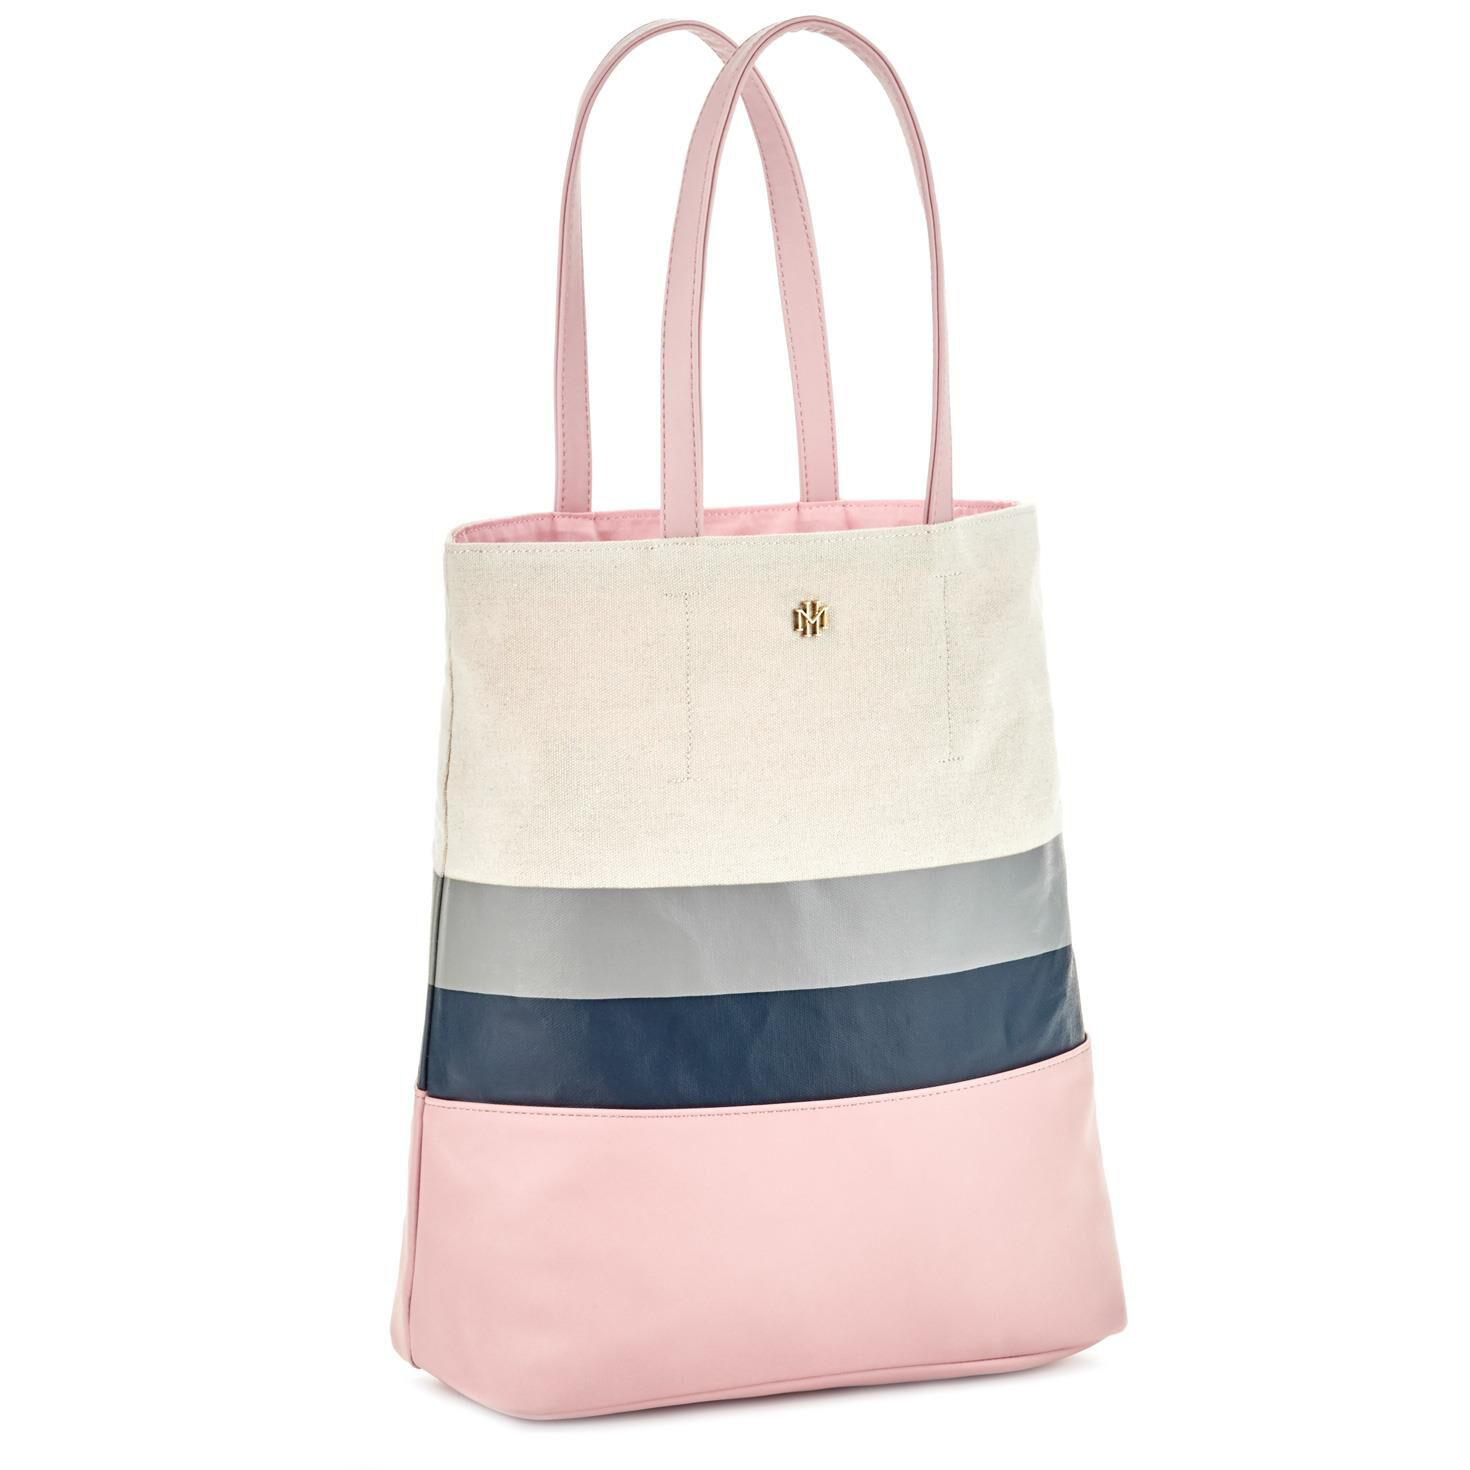 VIDA Foldaway Tote - Curvey Design by VIDA